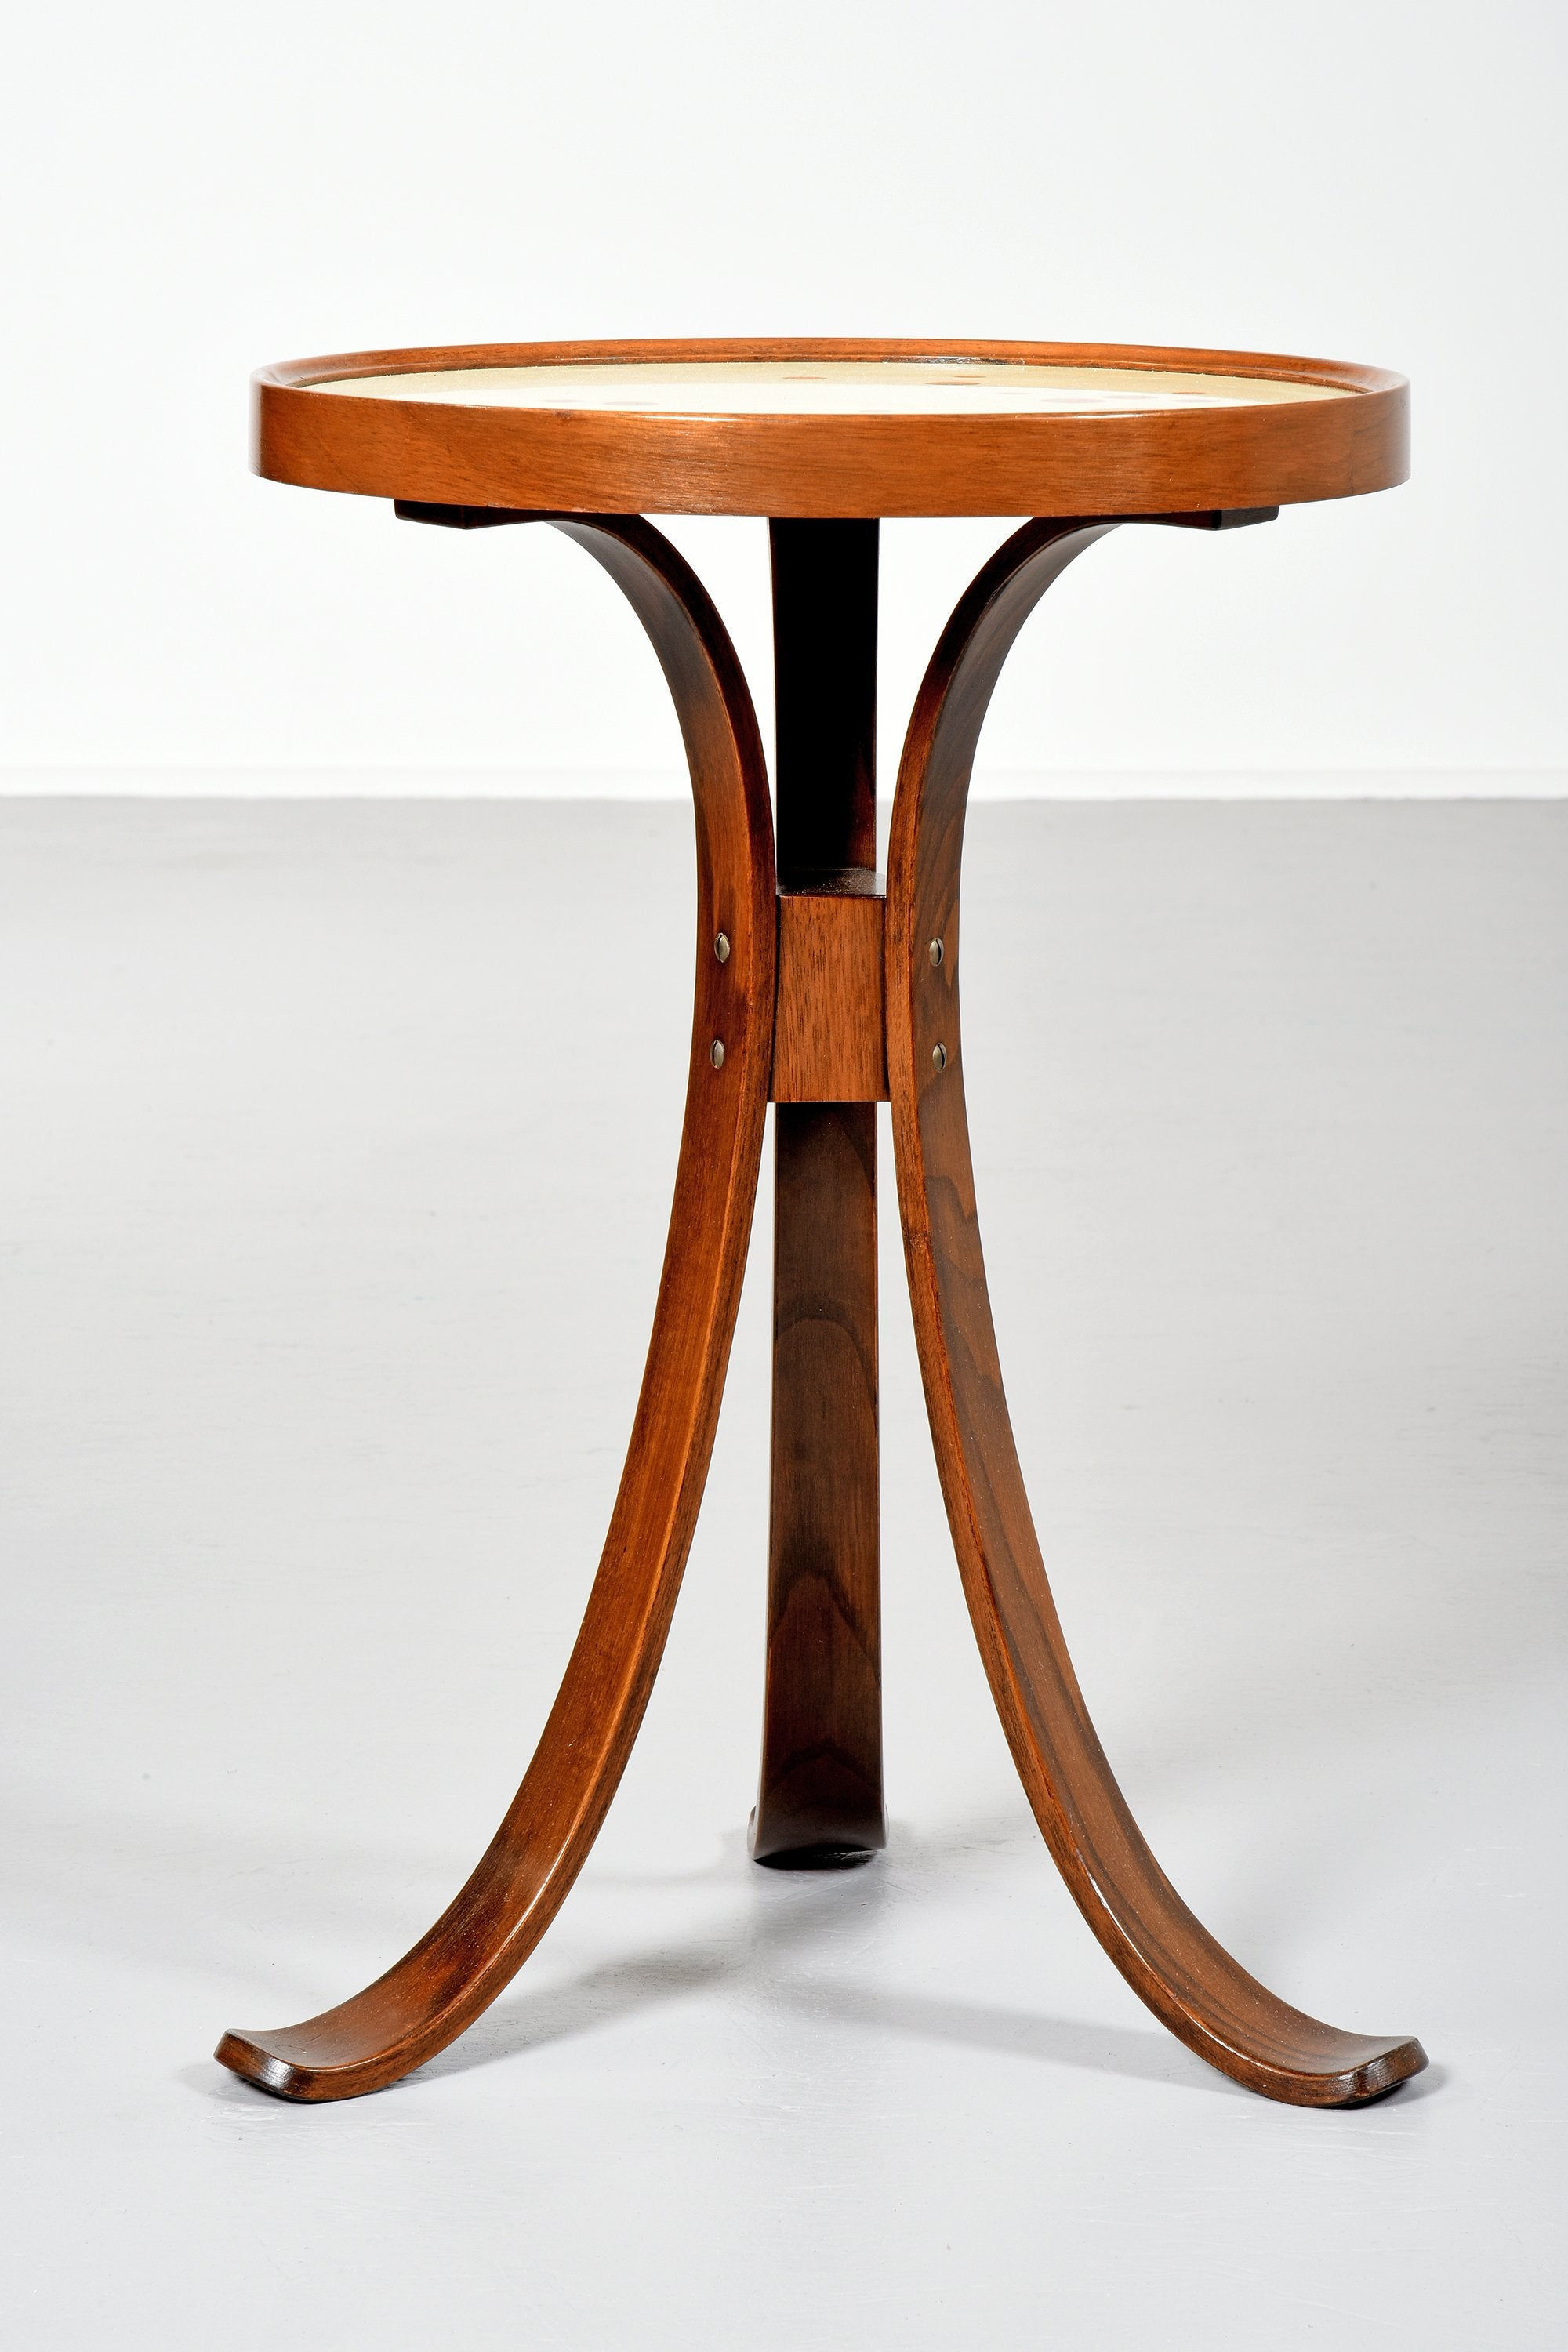 [SOLD] Edward Wormley for Dunbar Constellation Table, Model 479, 1950s